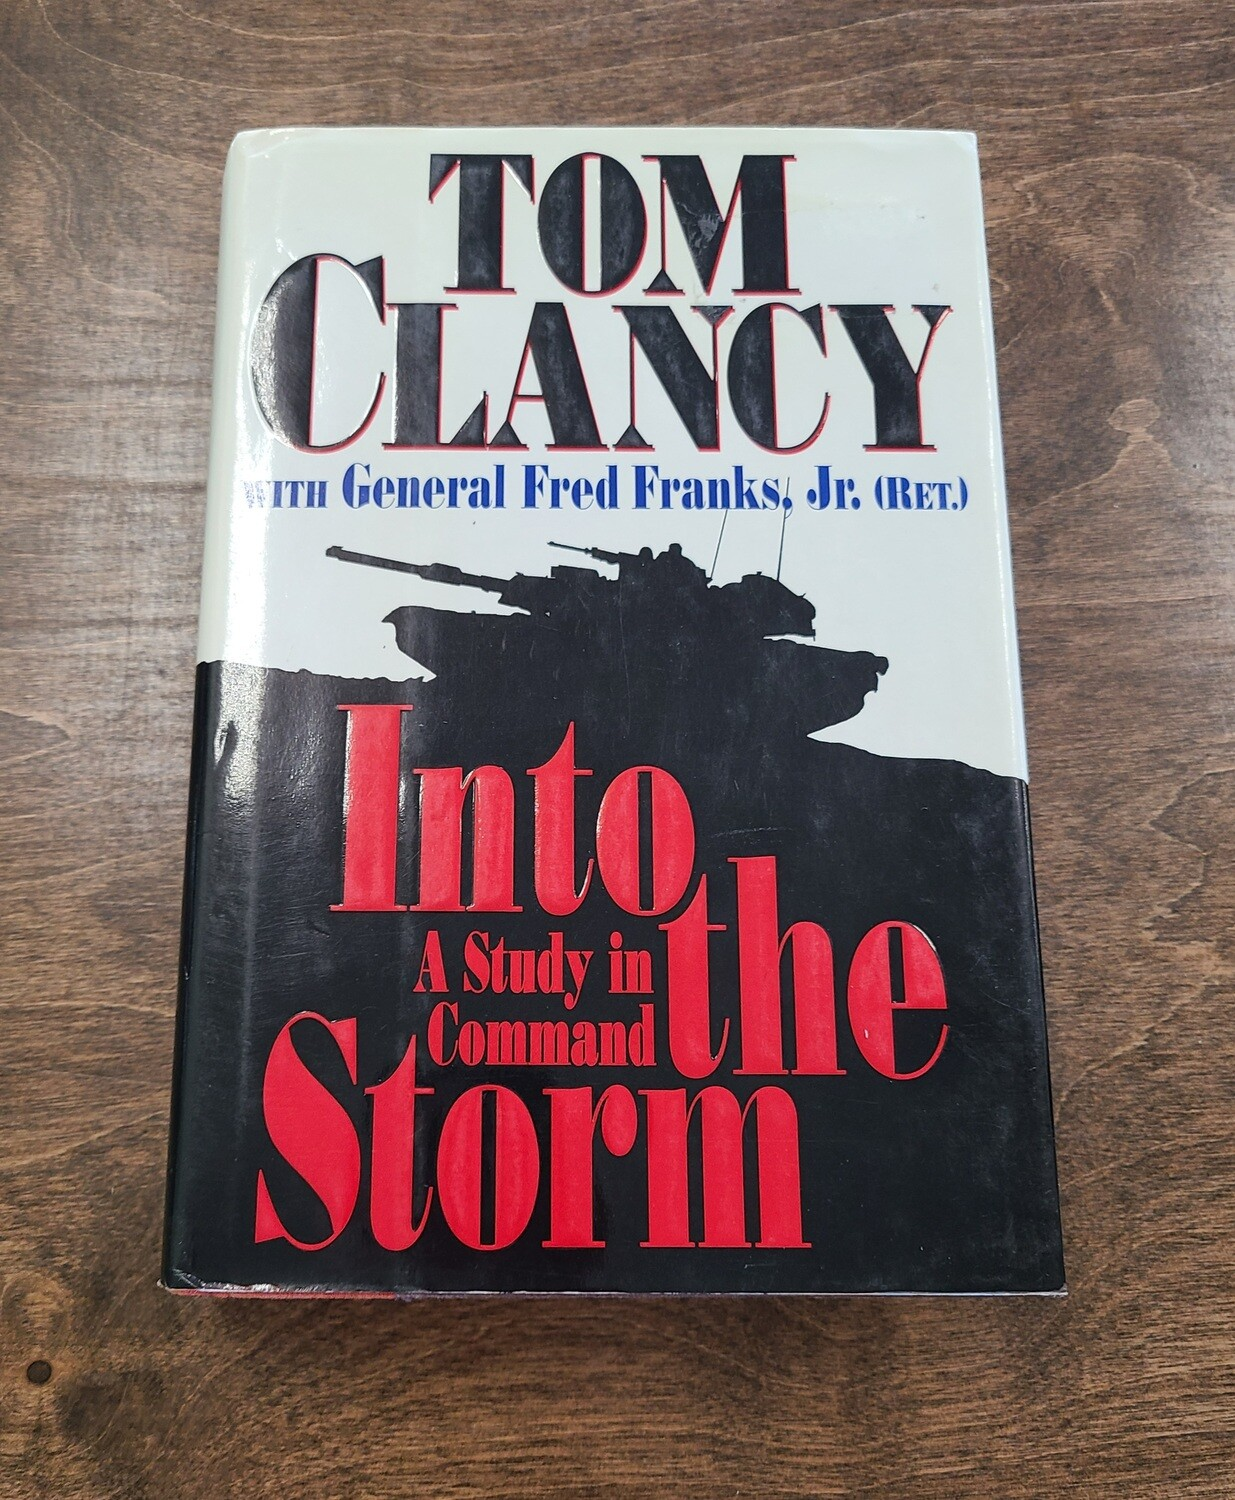 Into the Storm: A Study in Command by Tom Clancy with General Fred Franks, Jr.